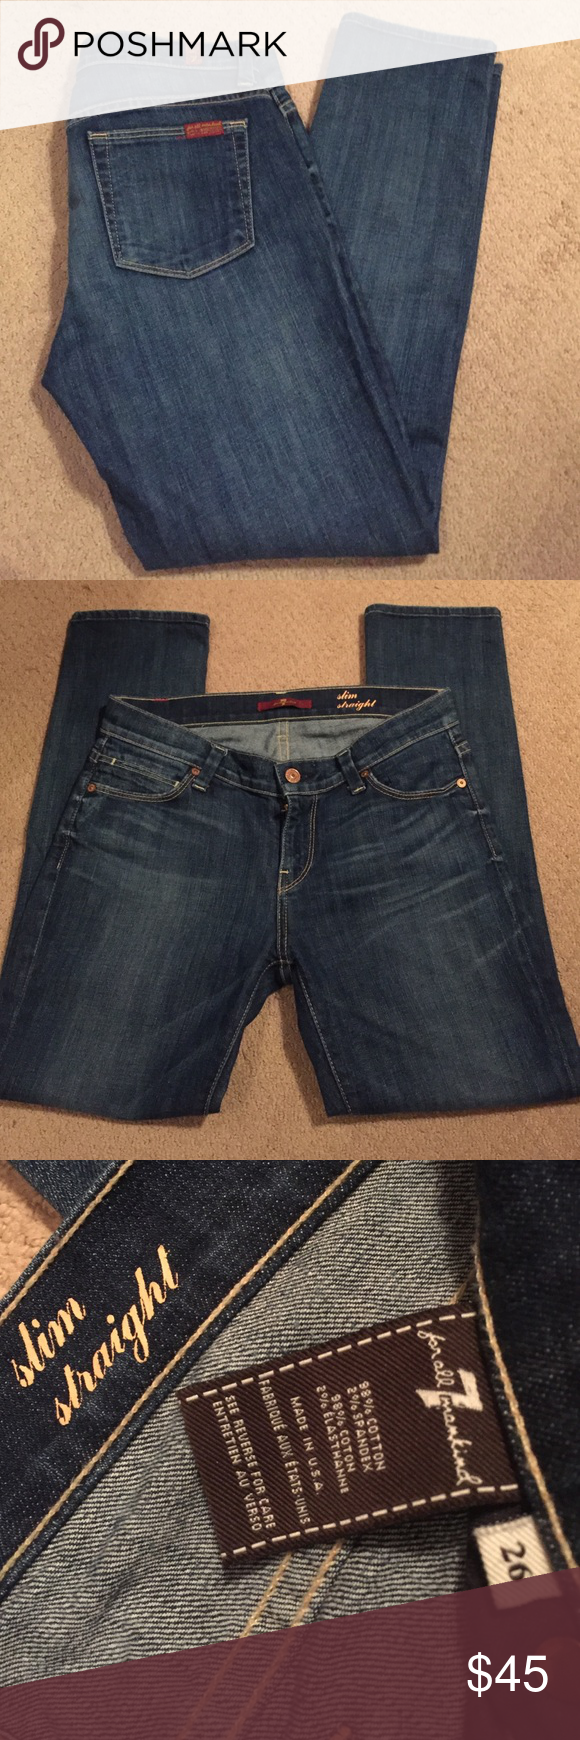 7 For All Mankind slim straight jeans! Gorgeous pair of slim straight 7 For All Mankind jeans! Size 26. Inseam 27. Signs of general wear/fading but good condition. Smoke free home! 7 For All Mankind Jeans Skinny